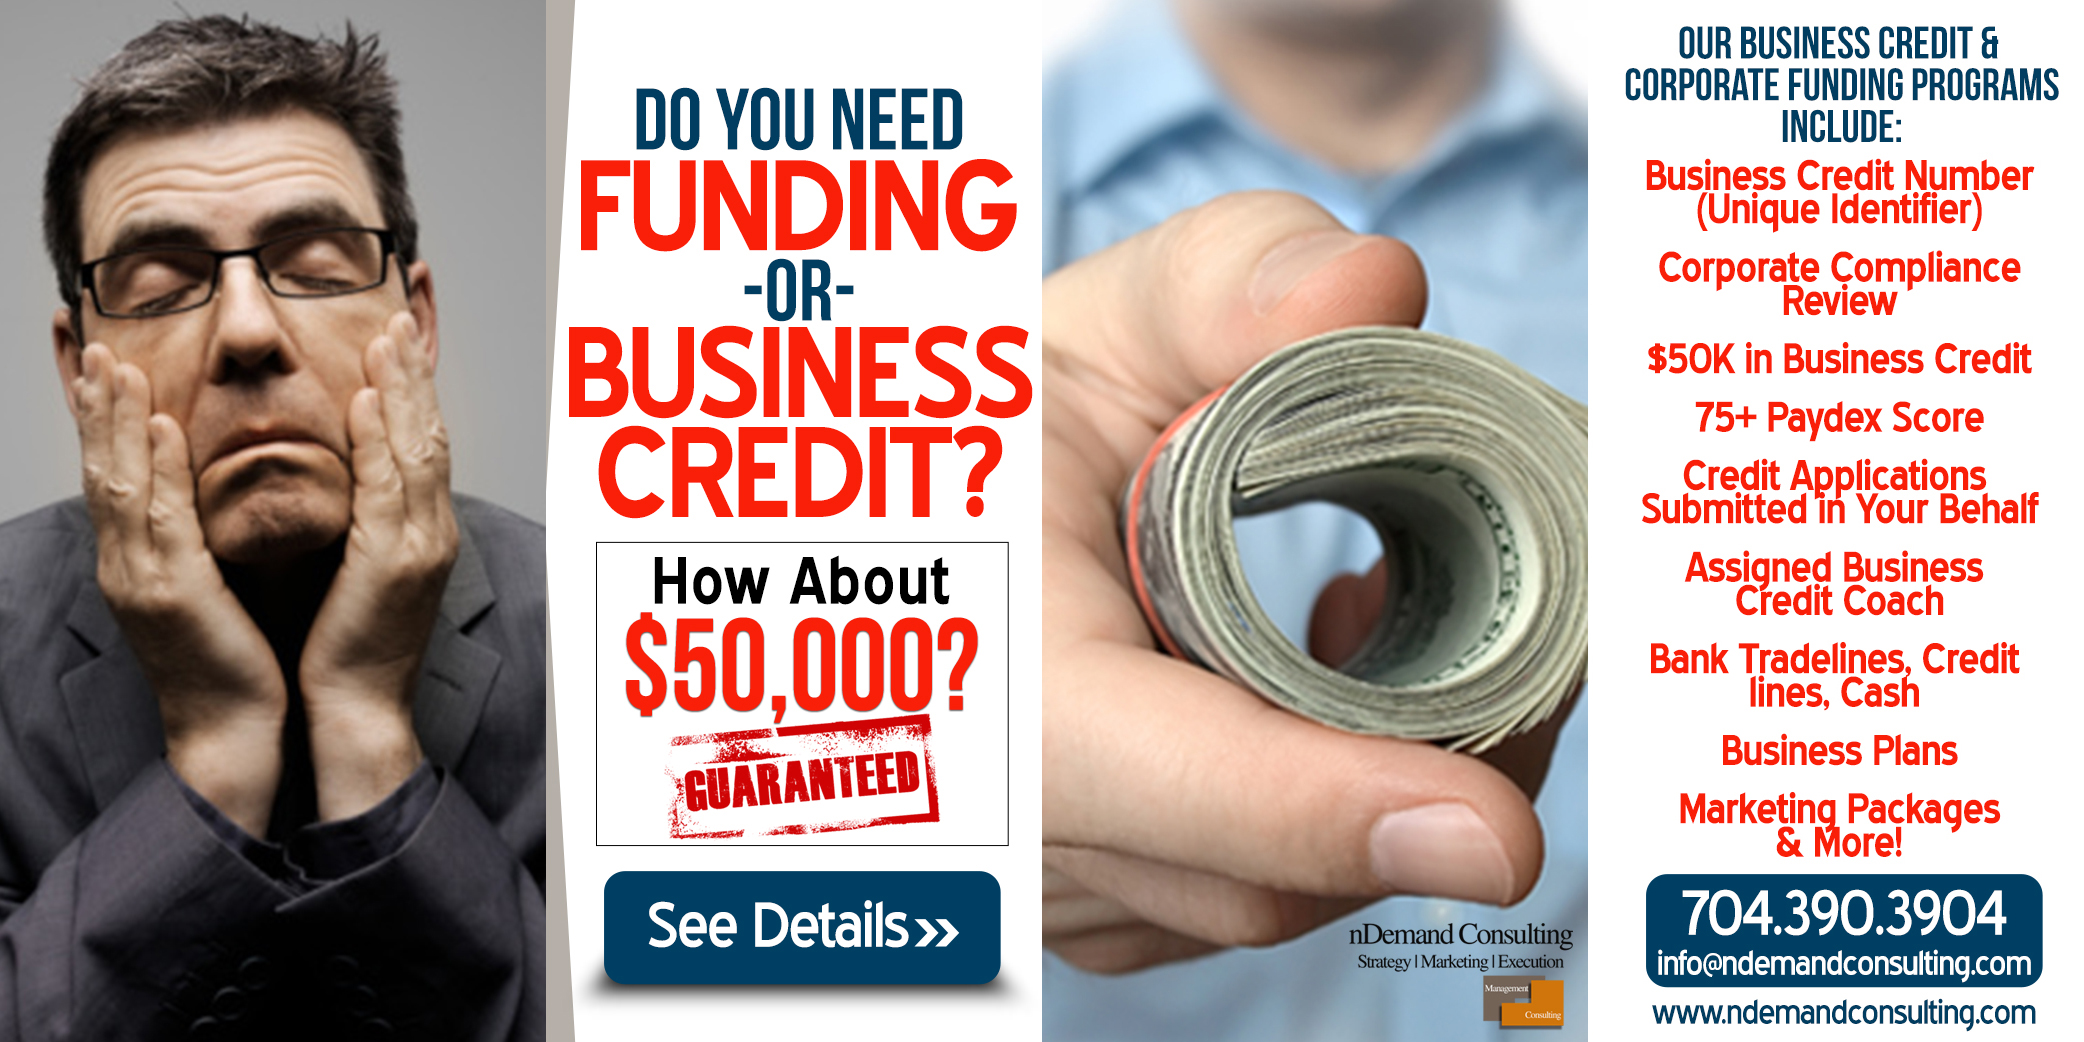 Business Credit & Corporate Funding